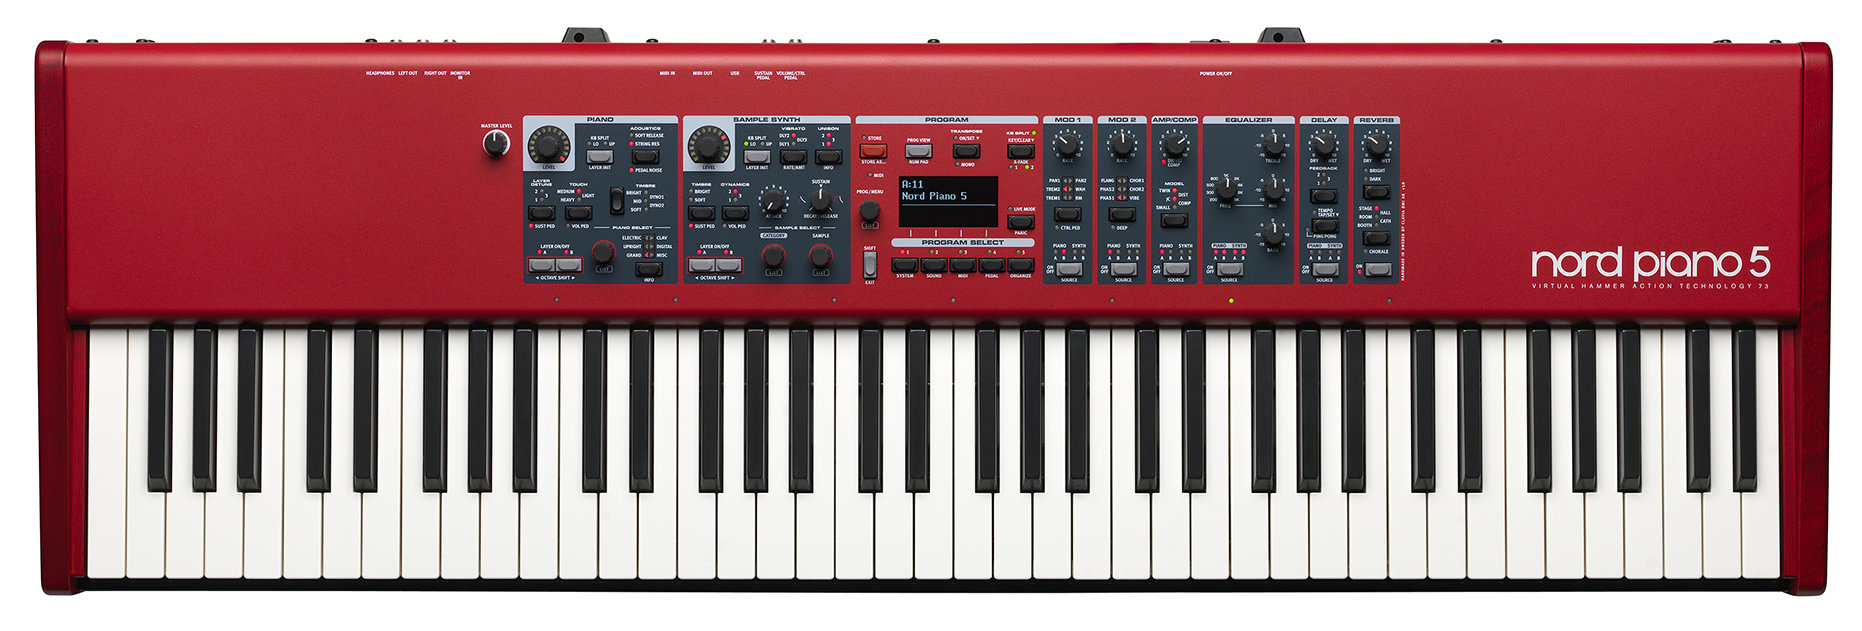 Stagepianos - Clavia Nord Piano 5 73 Stagepiano - Onlineshop Musikhaus Kirstein